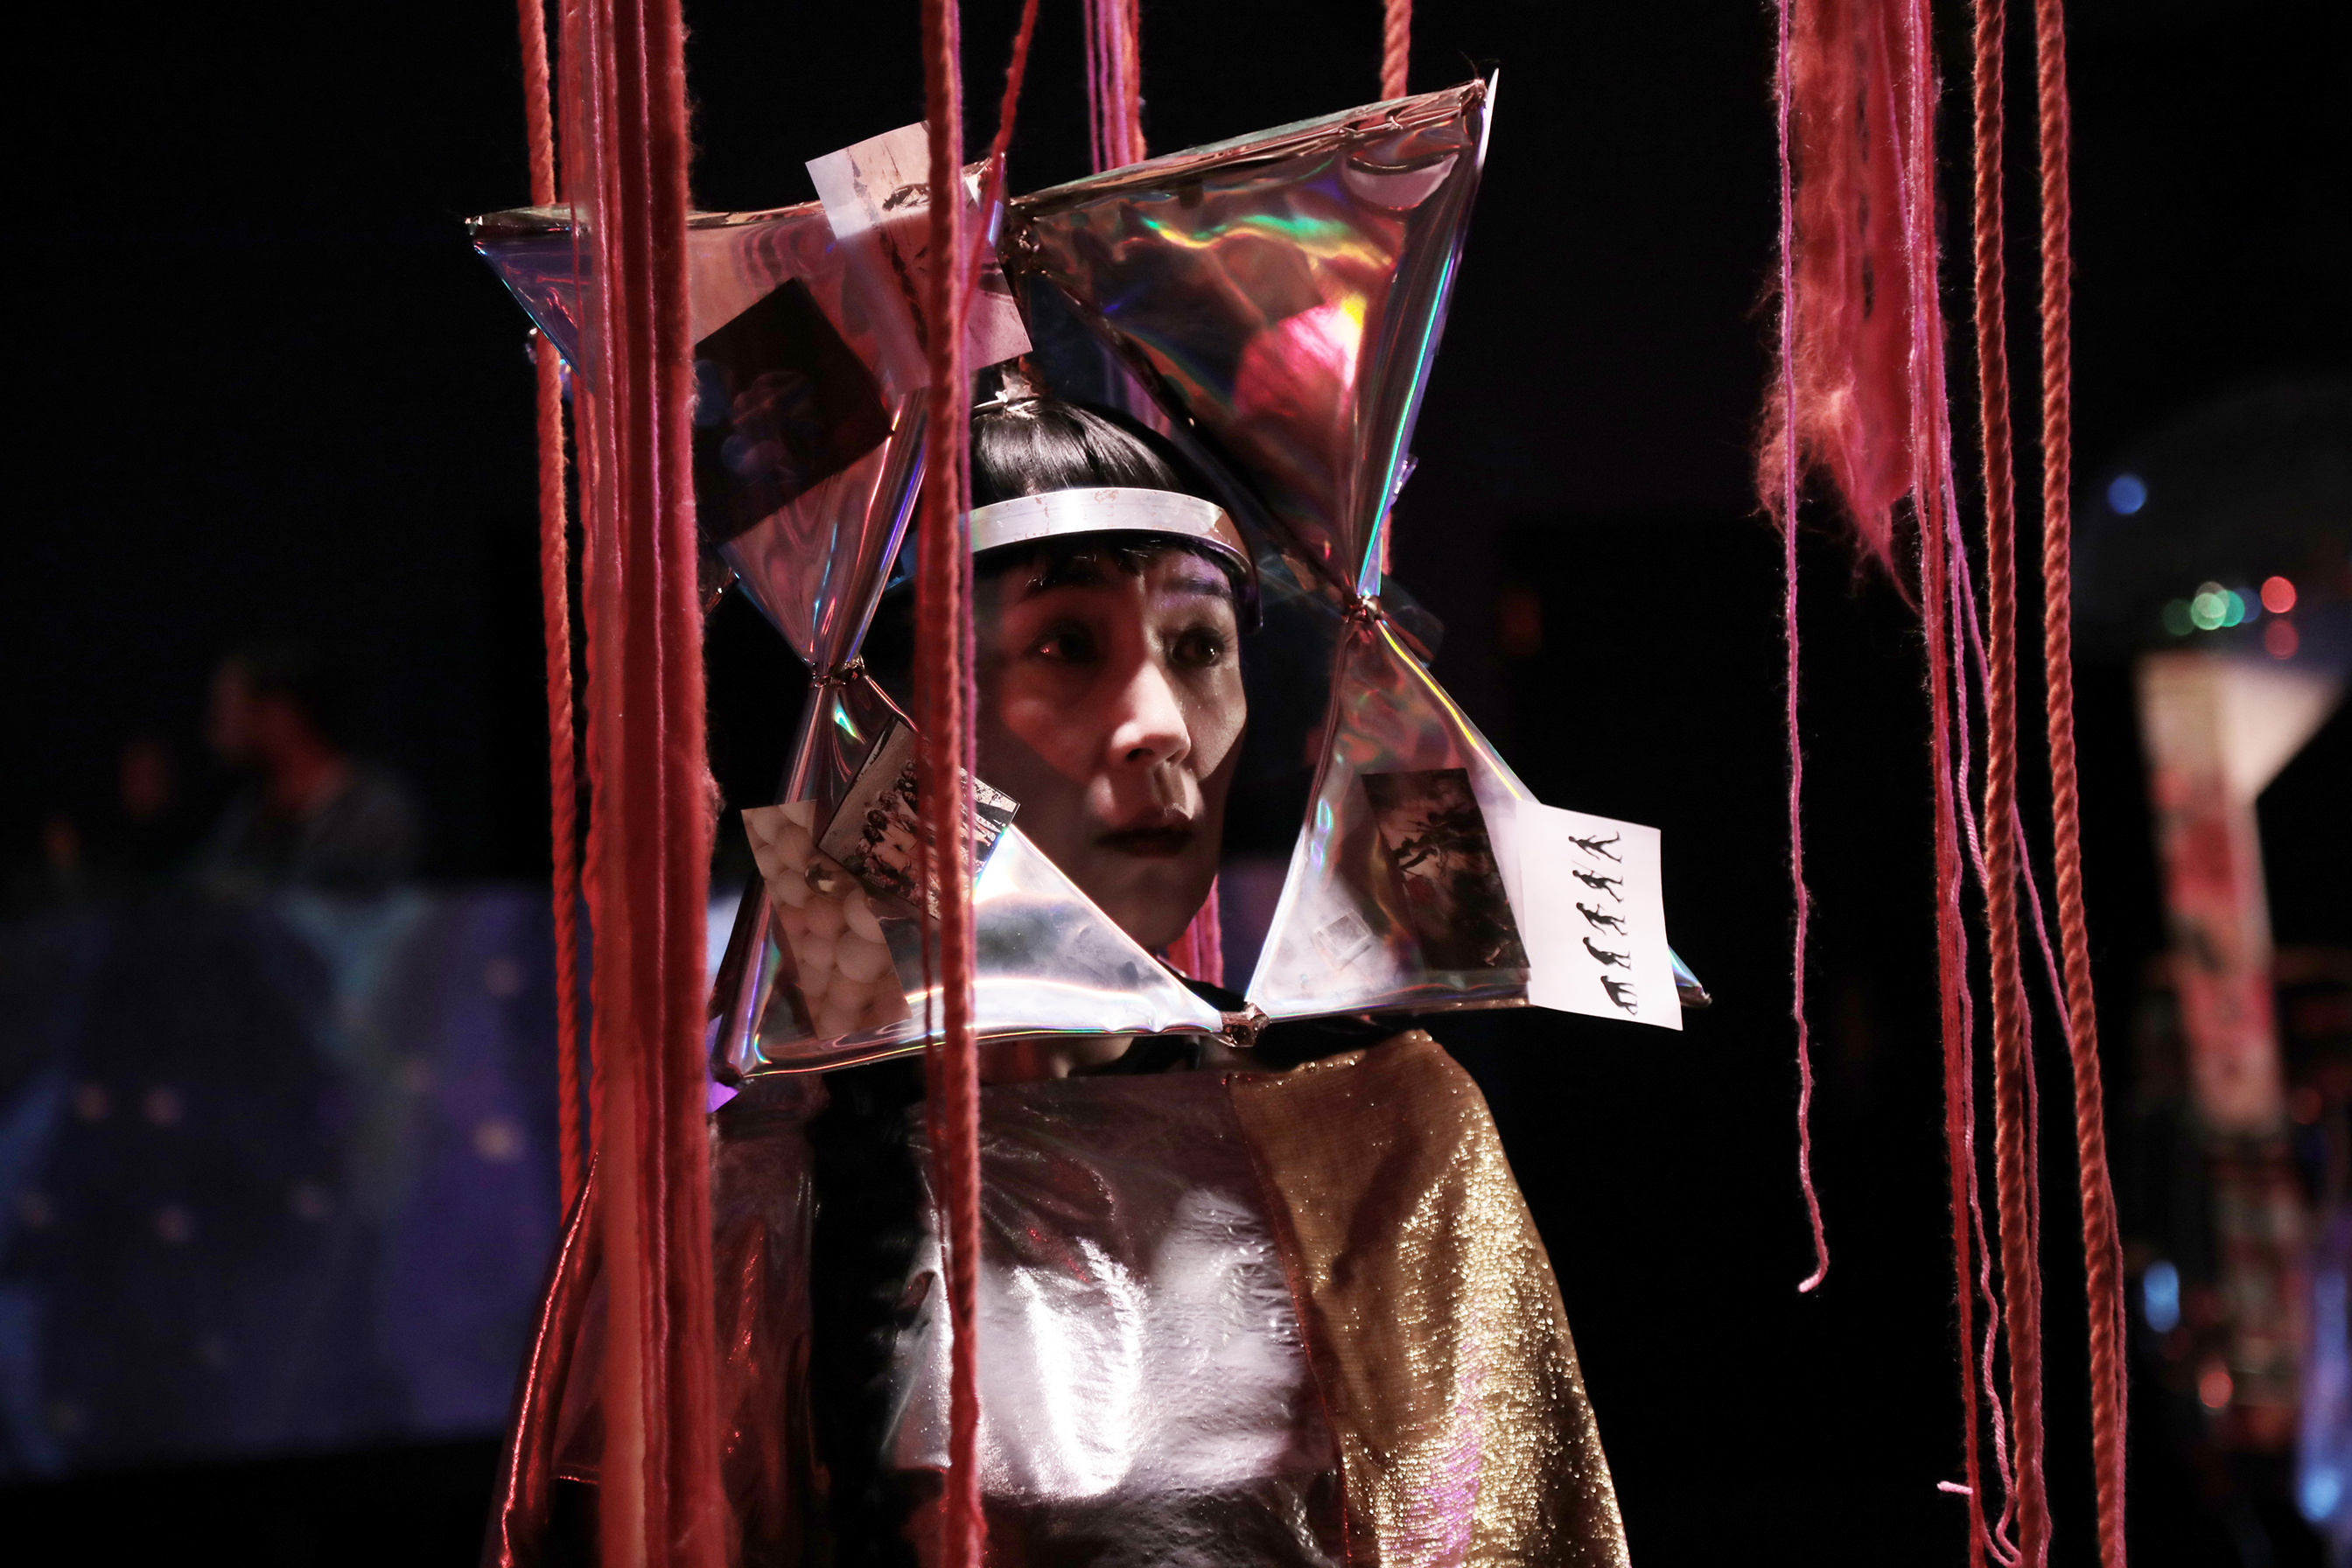 performer wearing a costume